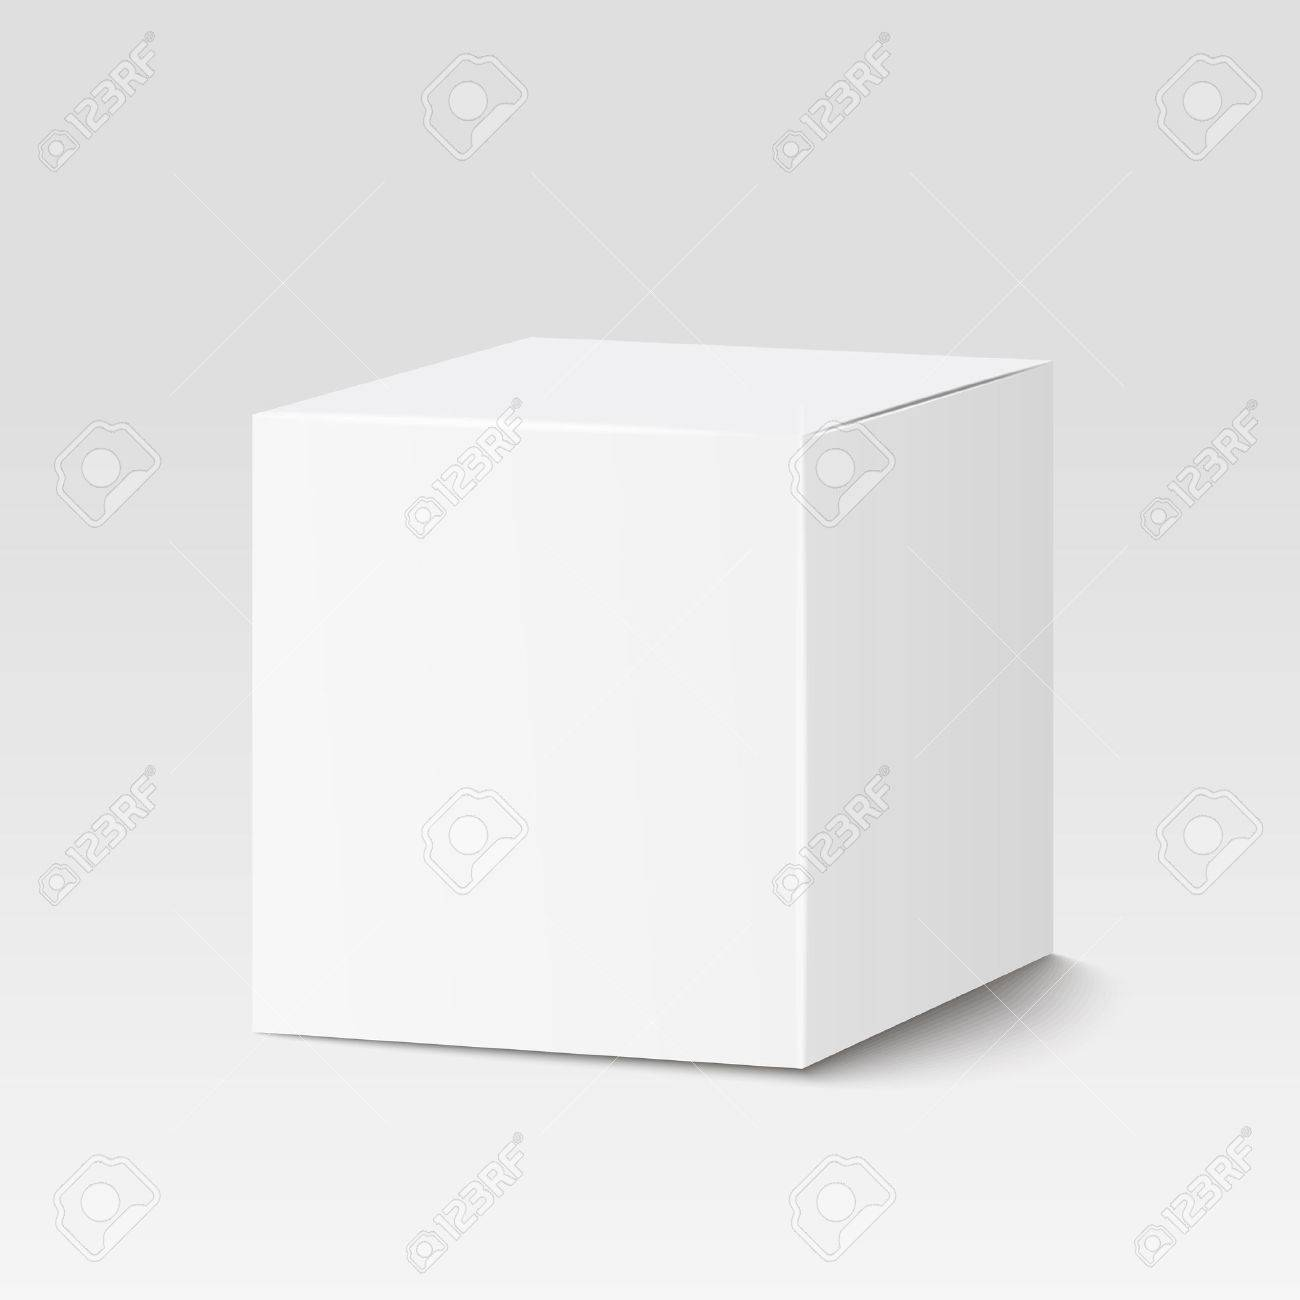 Vierkante Witte Box.White Square Box Container Packaging Royalty Free Cliparts